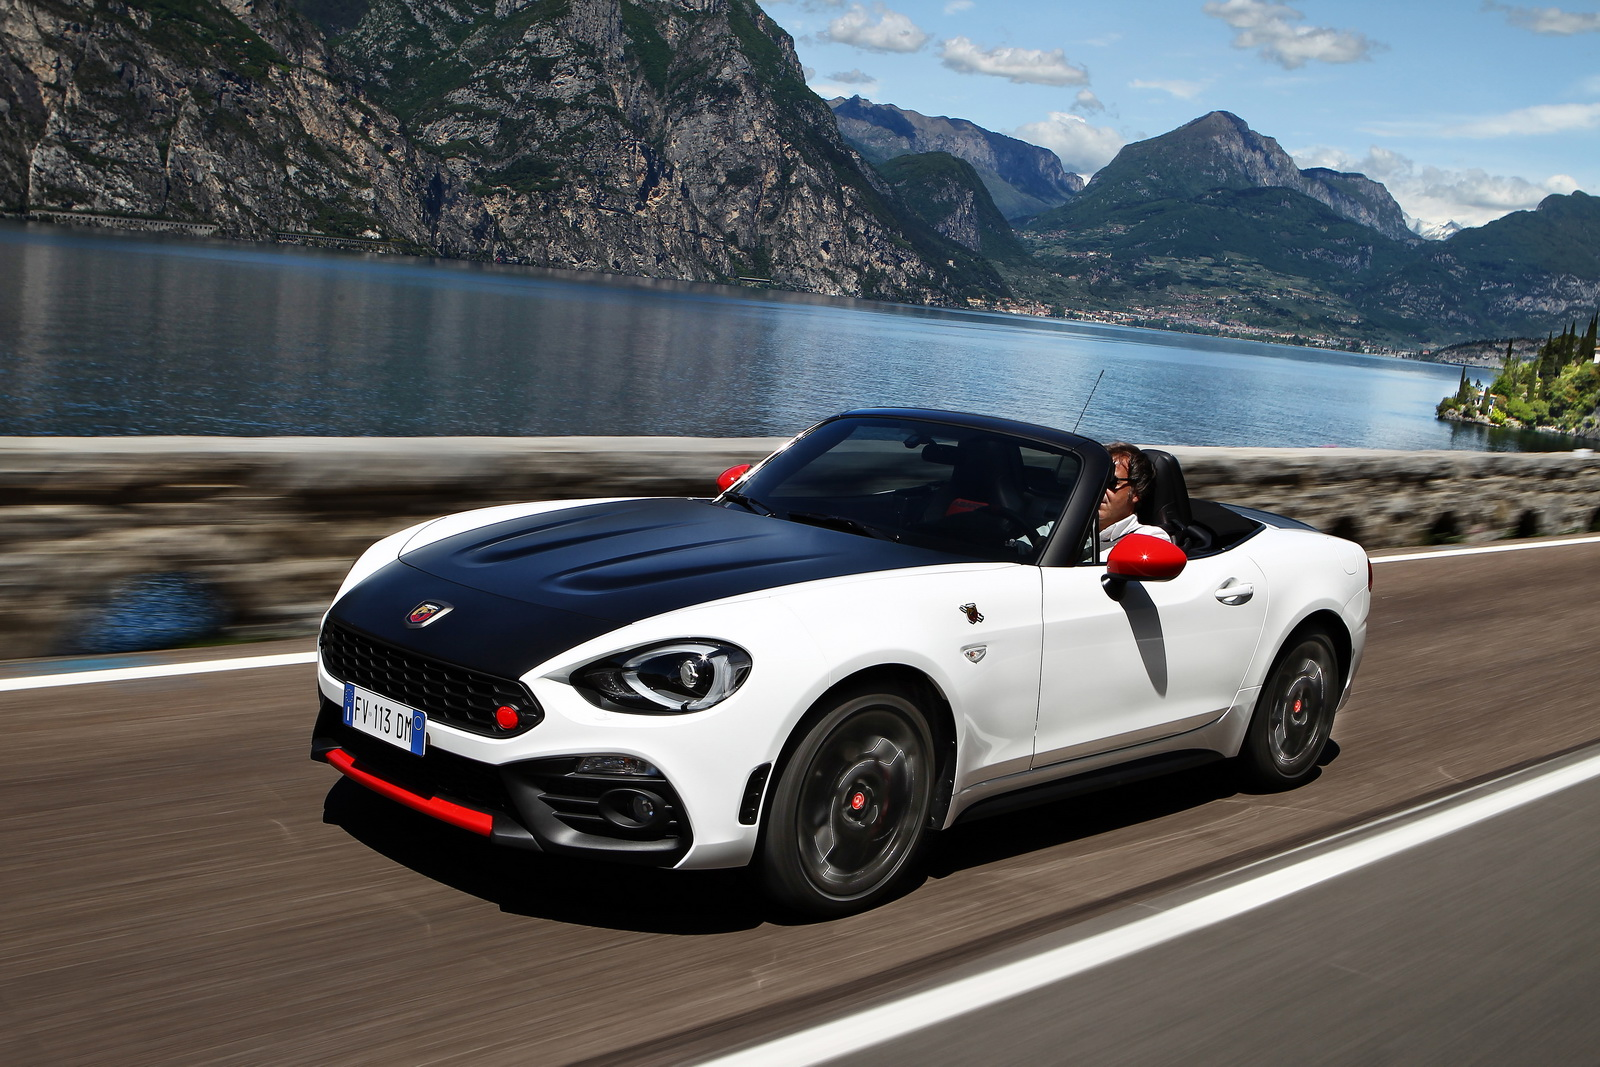 abarth 124 spider order books open in europe uk prices start at 29 565 23 pics carscoops. Black Bedroom Furniture Sets. Home Design Ideas